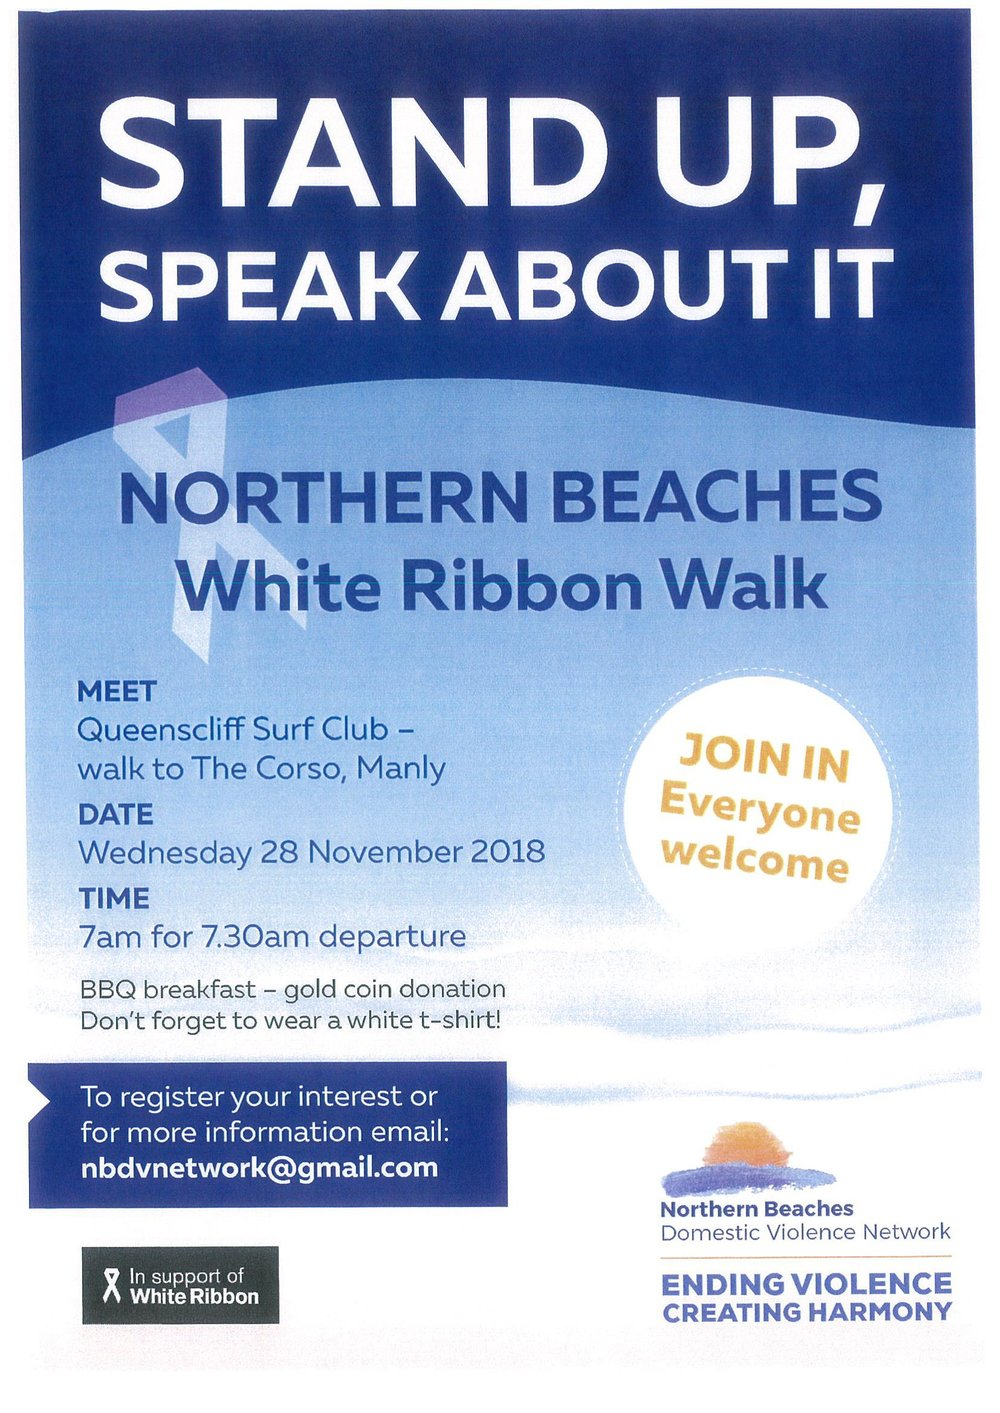 White Ribbon Walk - Poster.jpg